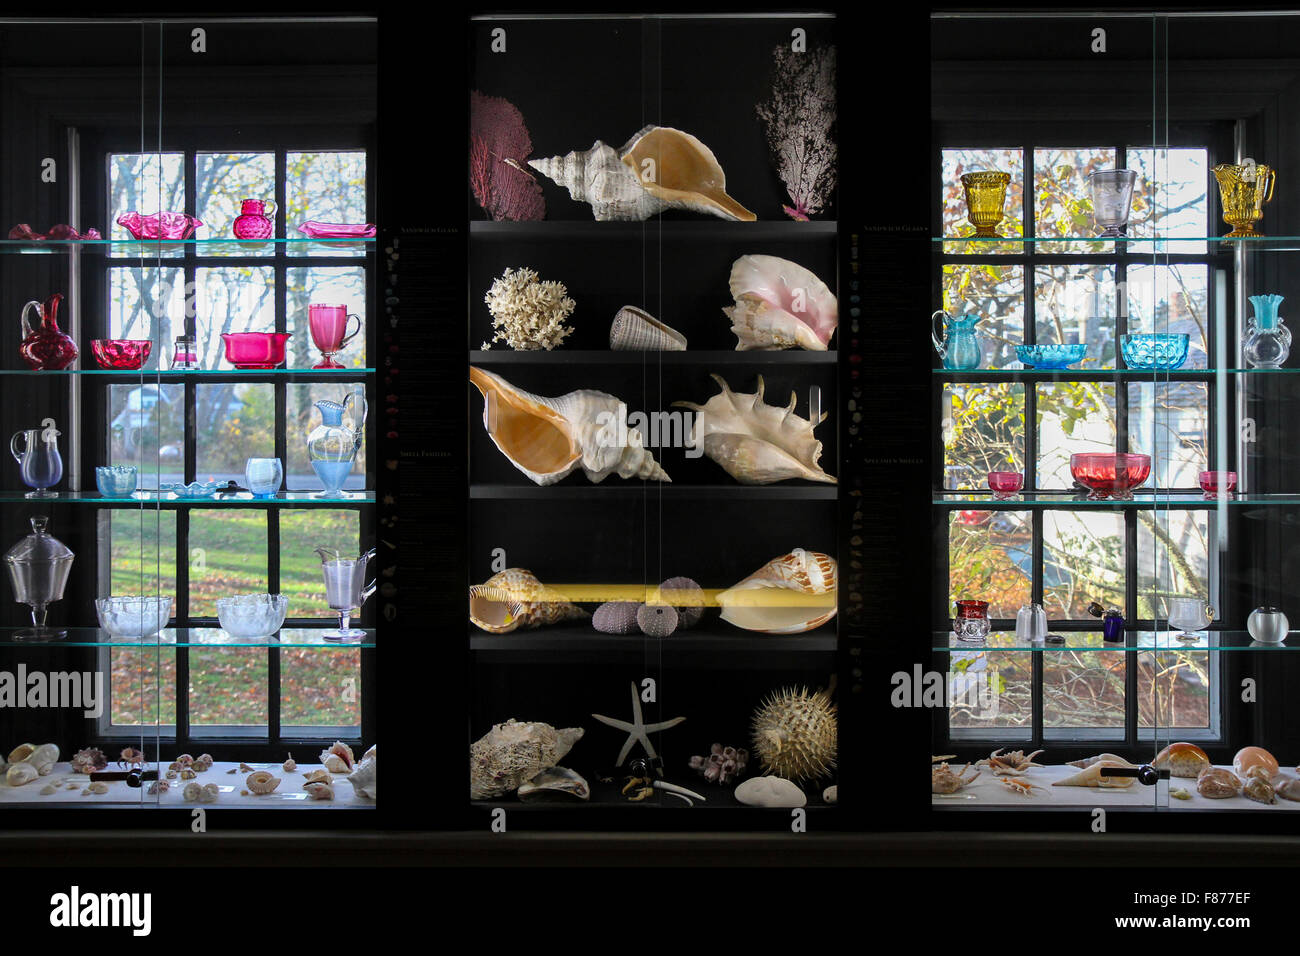 Seashells and Sandwich glass in the Durand Room, Atwood House Museum, Chatham, Massachusetts - Stock Image